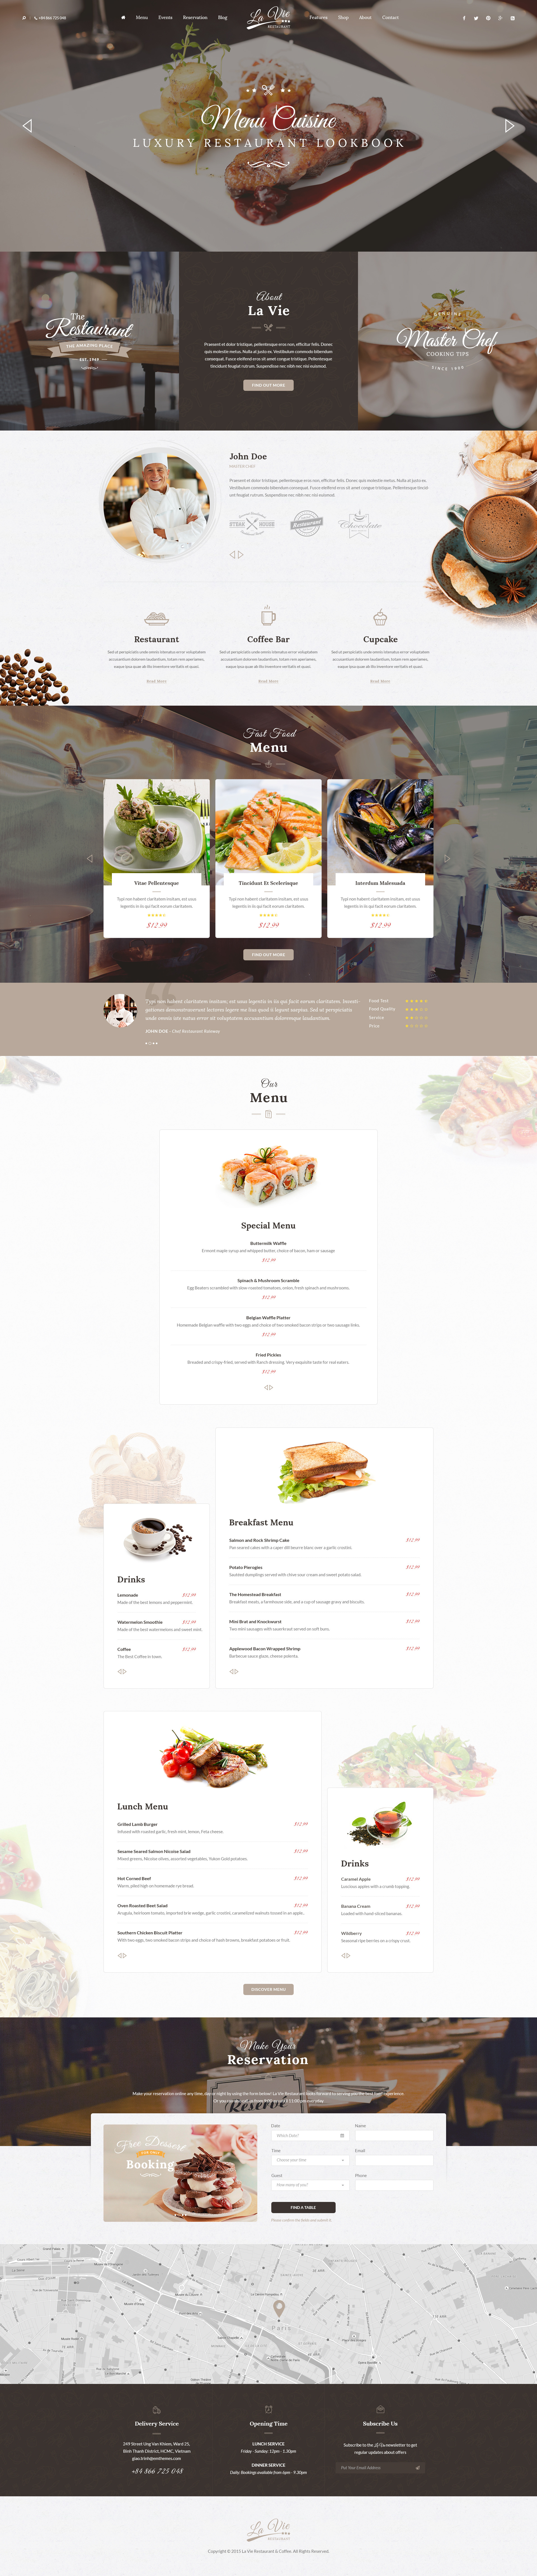 Catering - Restaurant & Cafe PSD Template by tvlgiao | ThemeForest